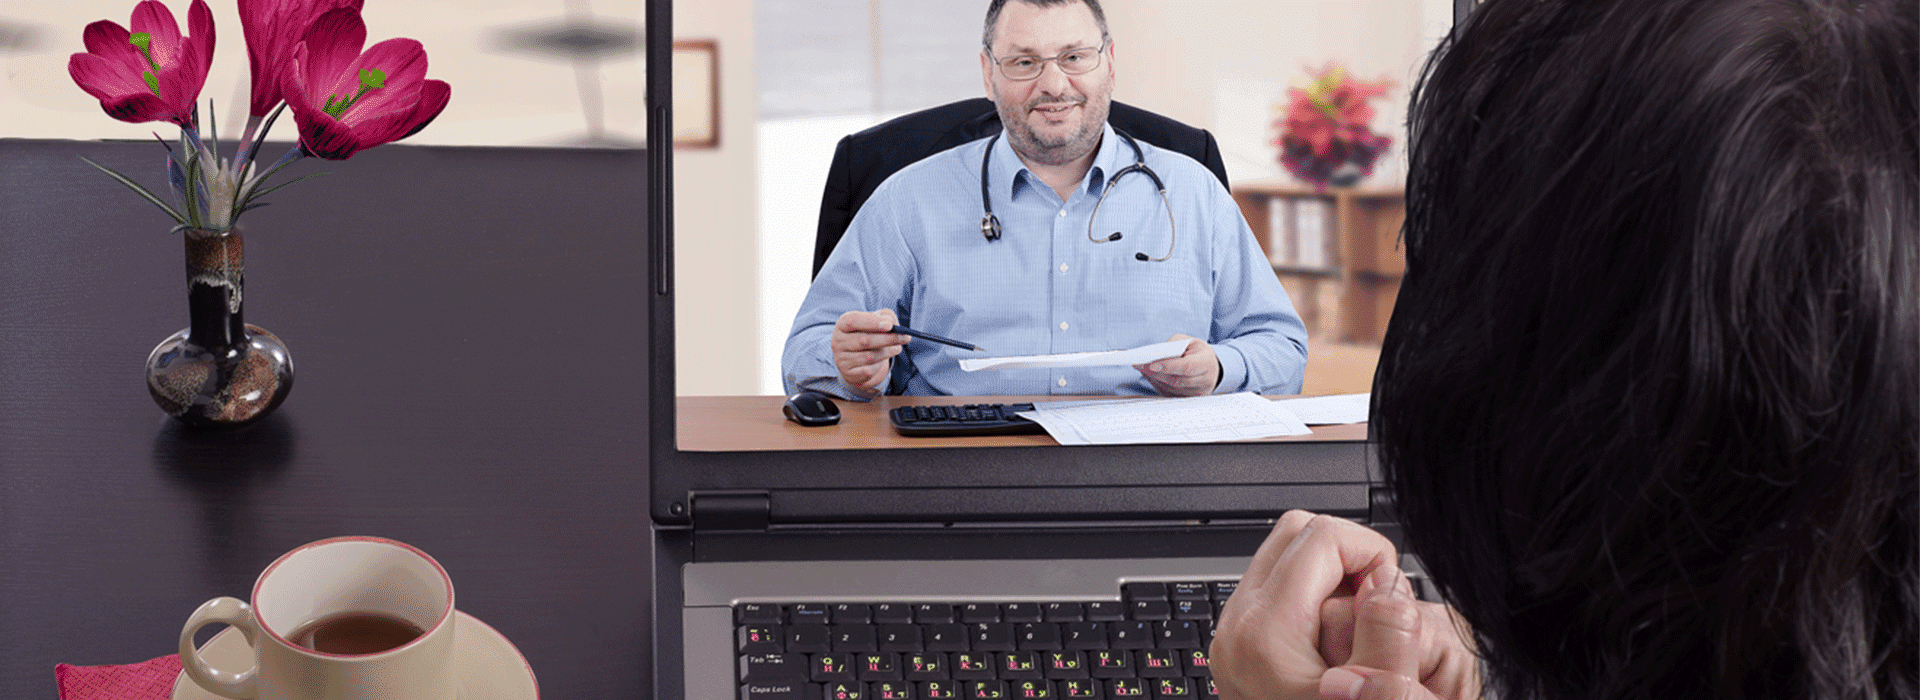 Liquid Payments Supports Telehealth Providers in Managing Dramatic Increase in Patients Due to Coronavirus Pandemic